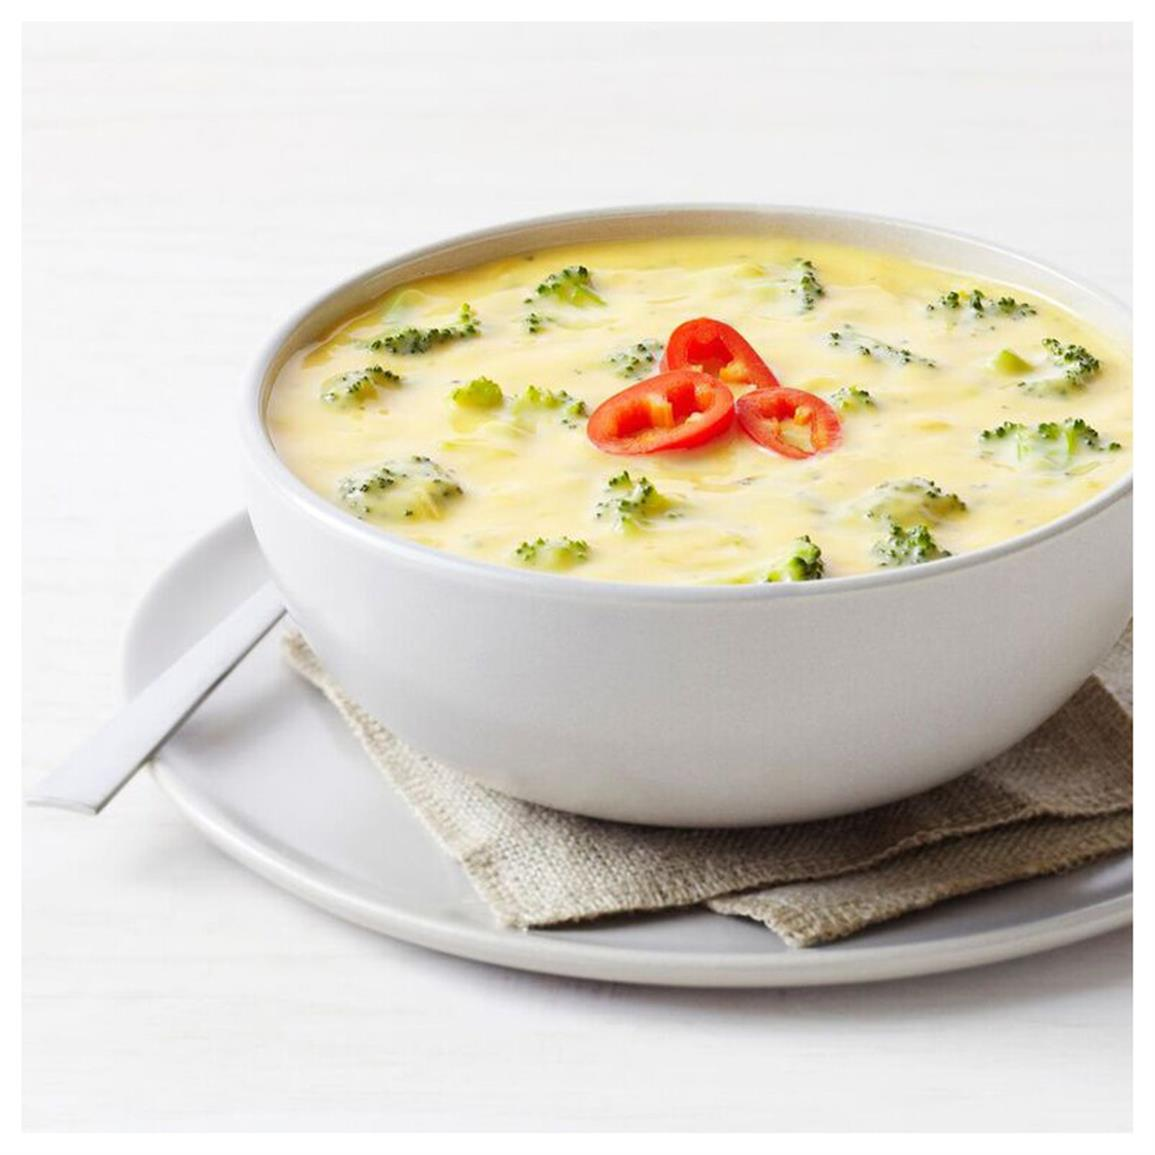 1 can Cheesy Broccoli Soup (33 servings)